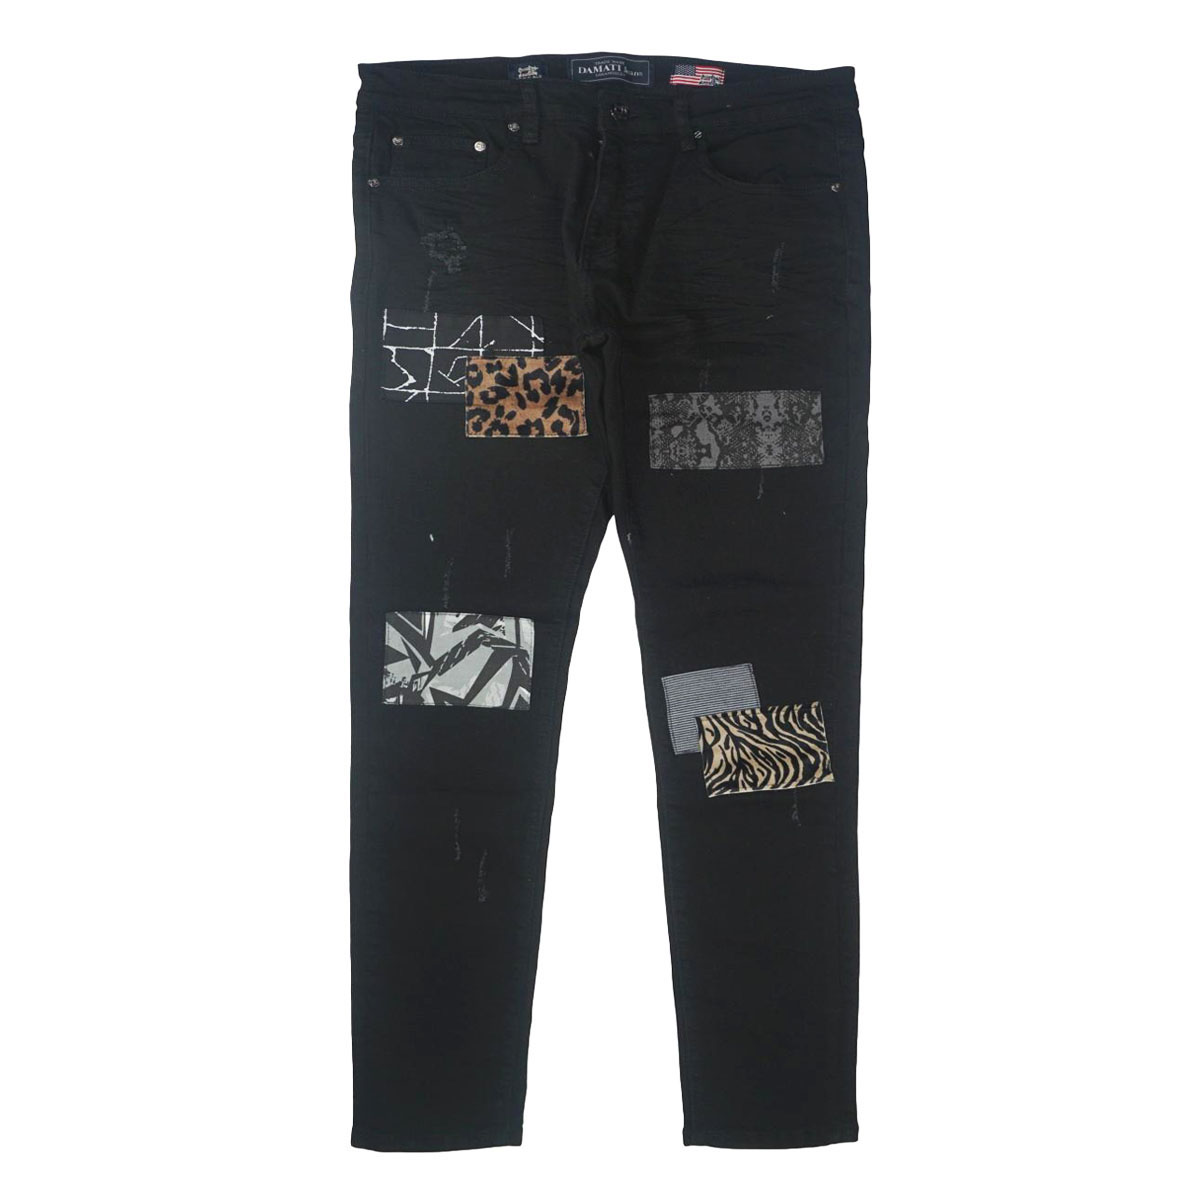 Da Vinci Patchwork Premium Stretch Denim (Balack) /C7